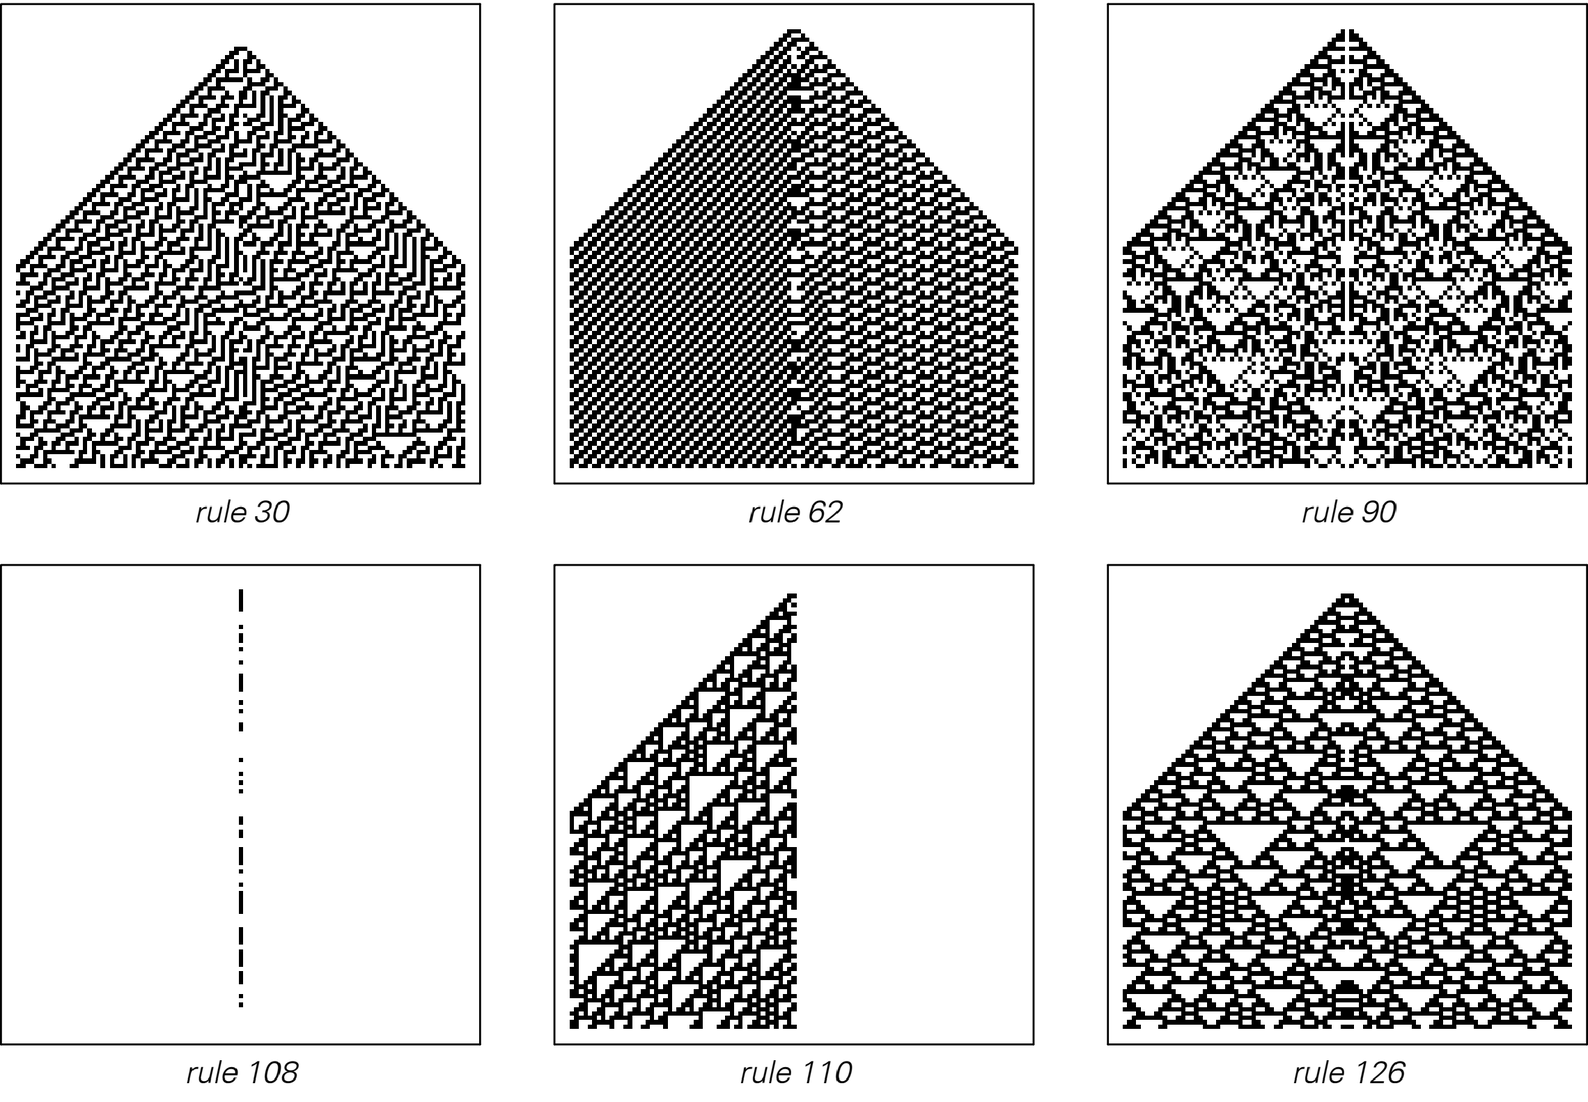 Properties of [initially random cellular automaton] patterns image 1